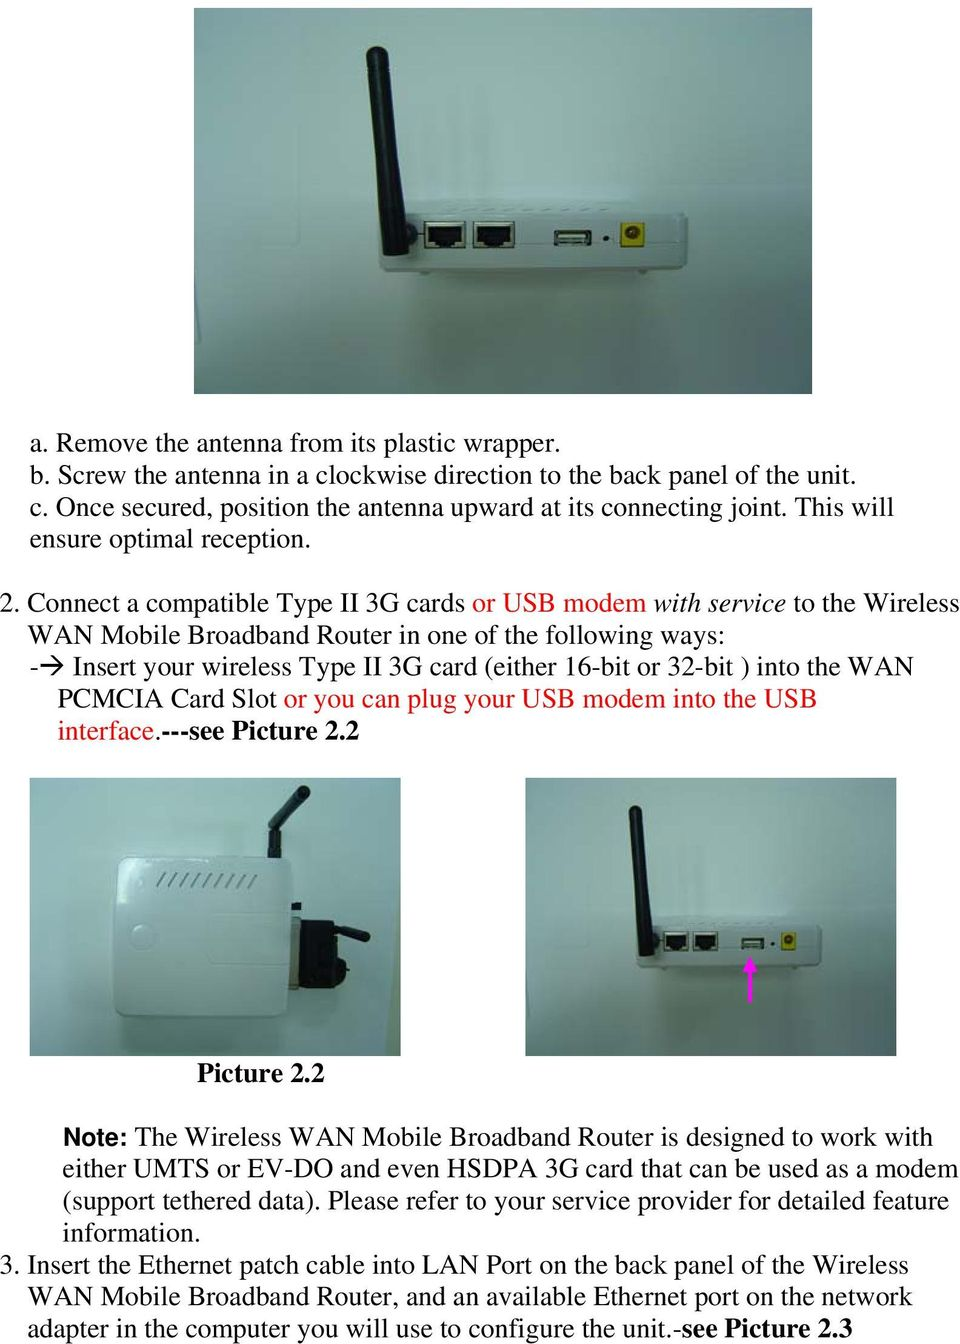 Connect a compatible Type II 3G cards or USB modem with service to the Wireless WAN Mobile Broadband Router in one of the following ways: - Insert your wireless Type II 3G card (either 16-bit or